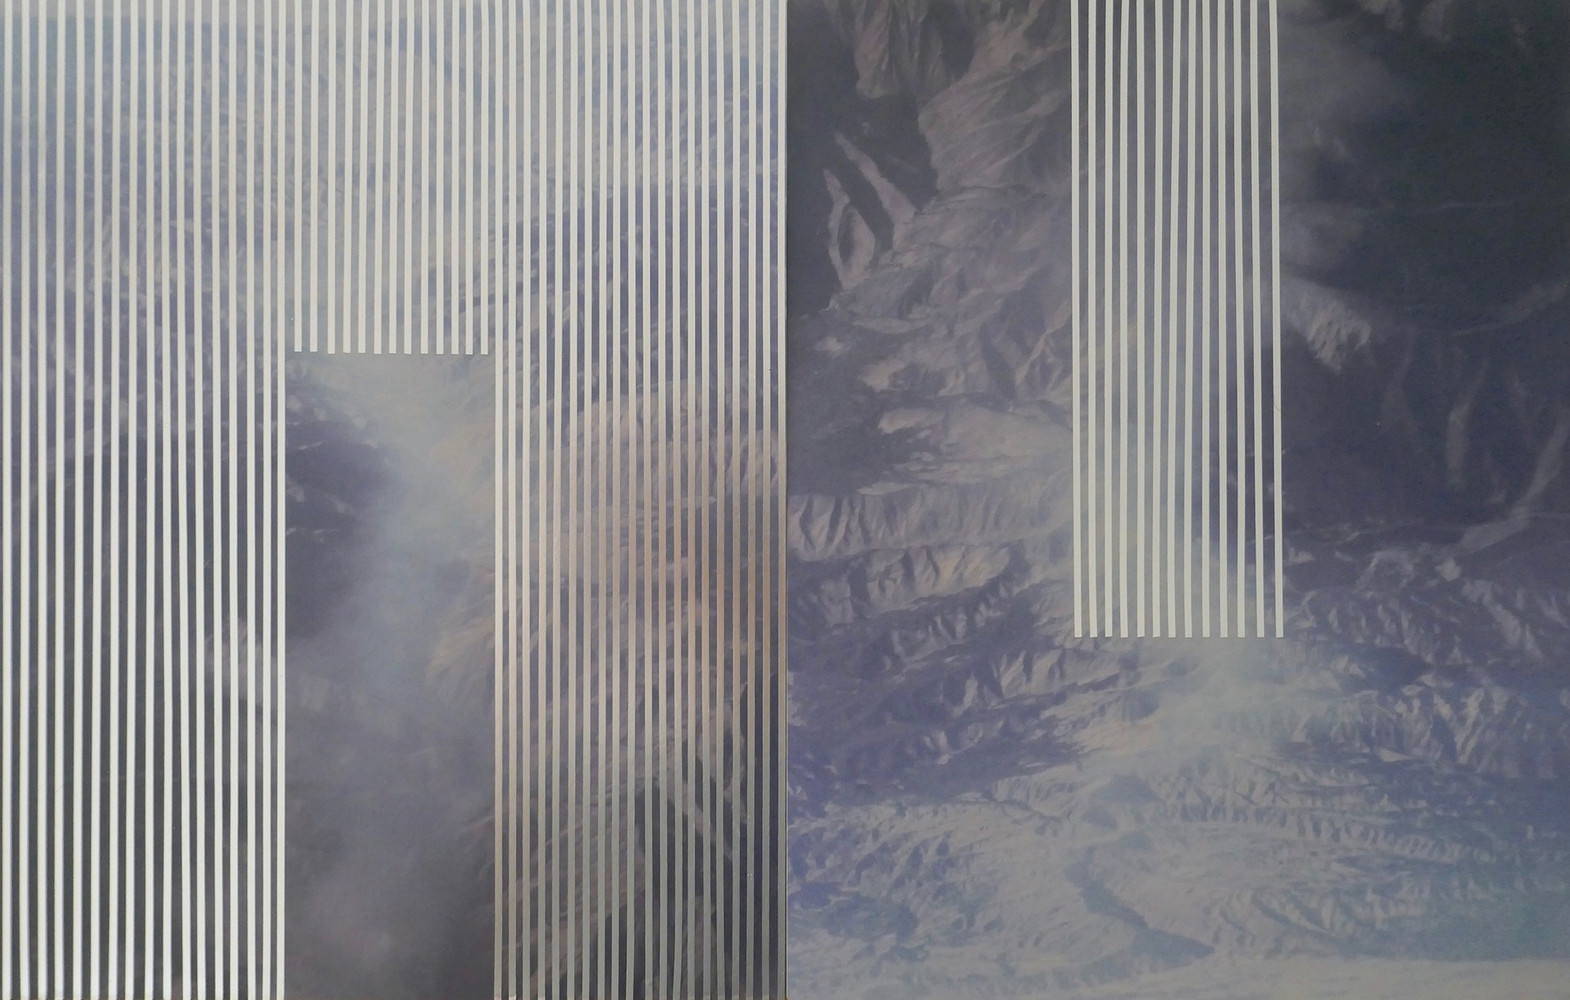 nowhere/now here (blue mountains), photographs on aluminum, mylar tape, 14 x 22 inches